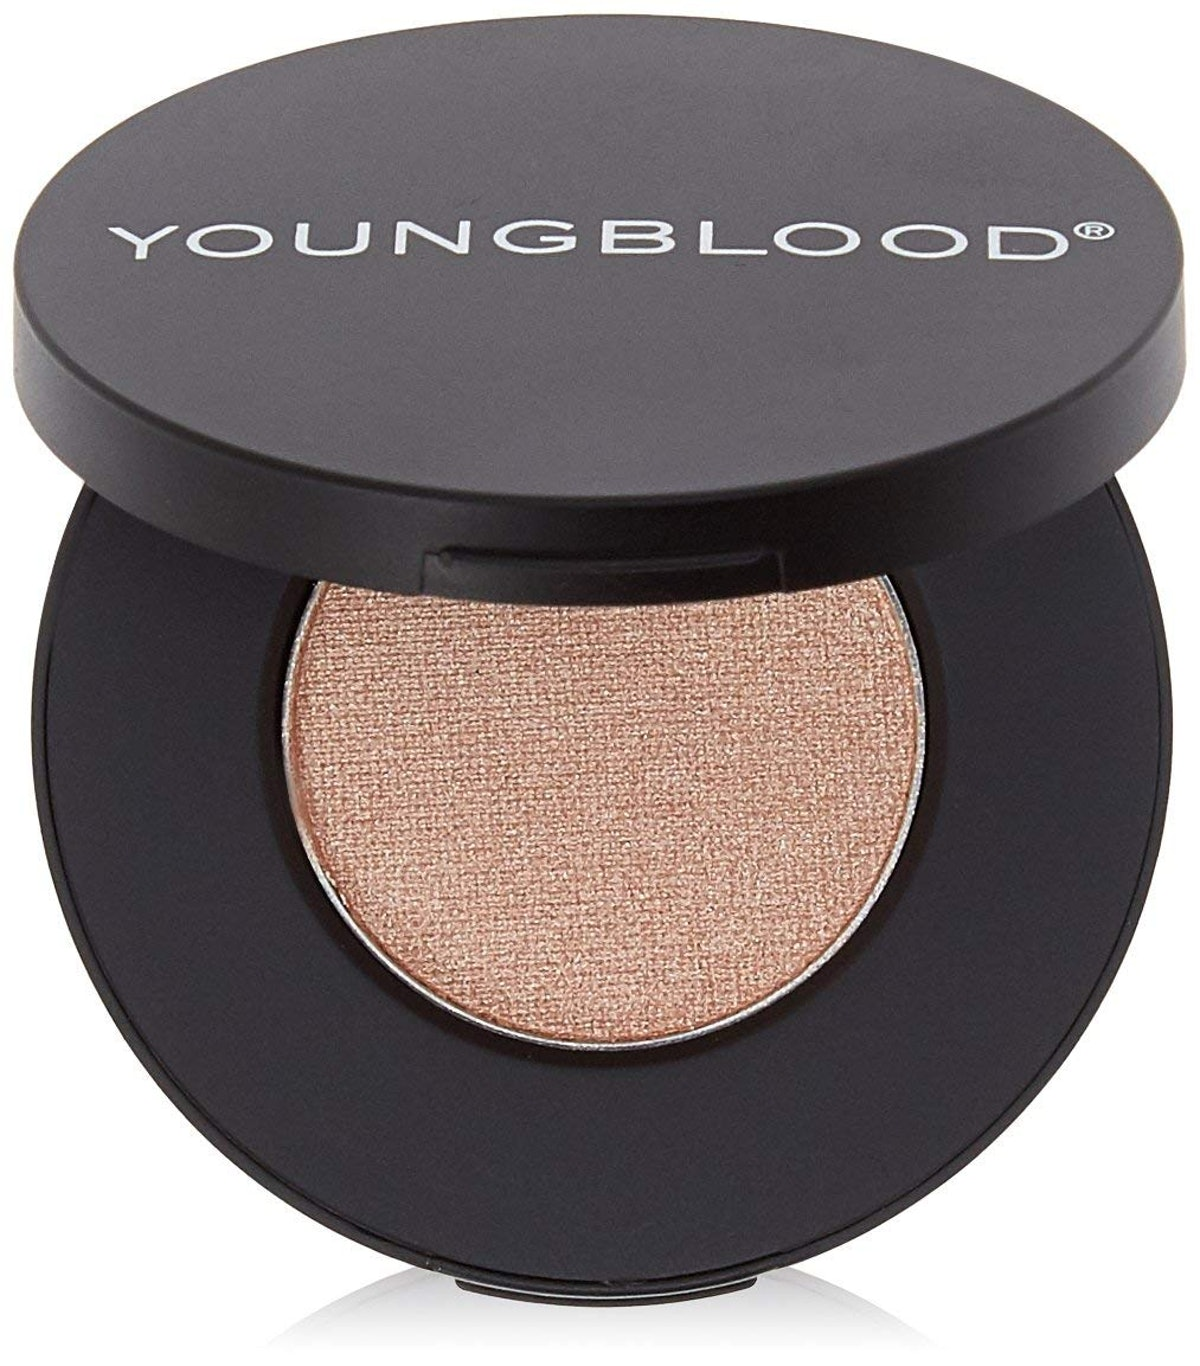 Youngblood Pressed Mineral Eyeshadow